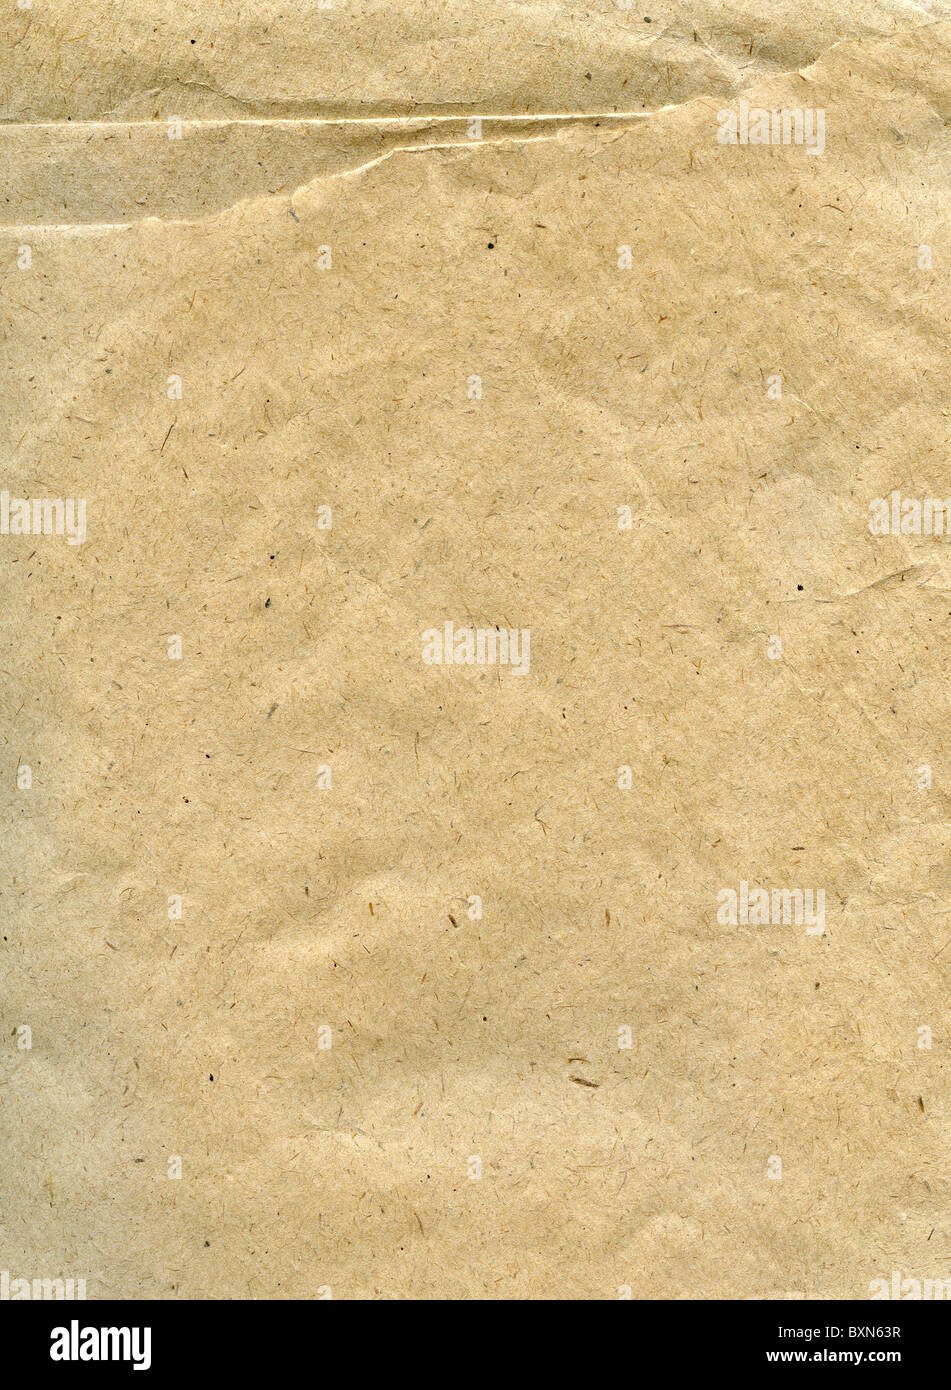 Textured obsolete recycled paper with natural fiber parts - Stock Image